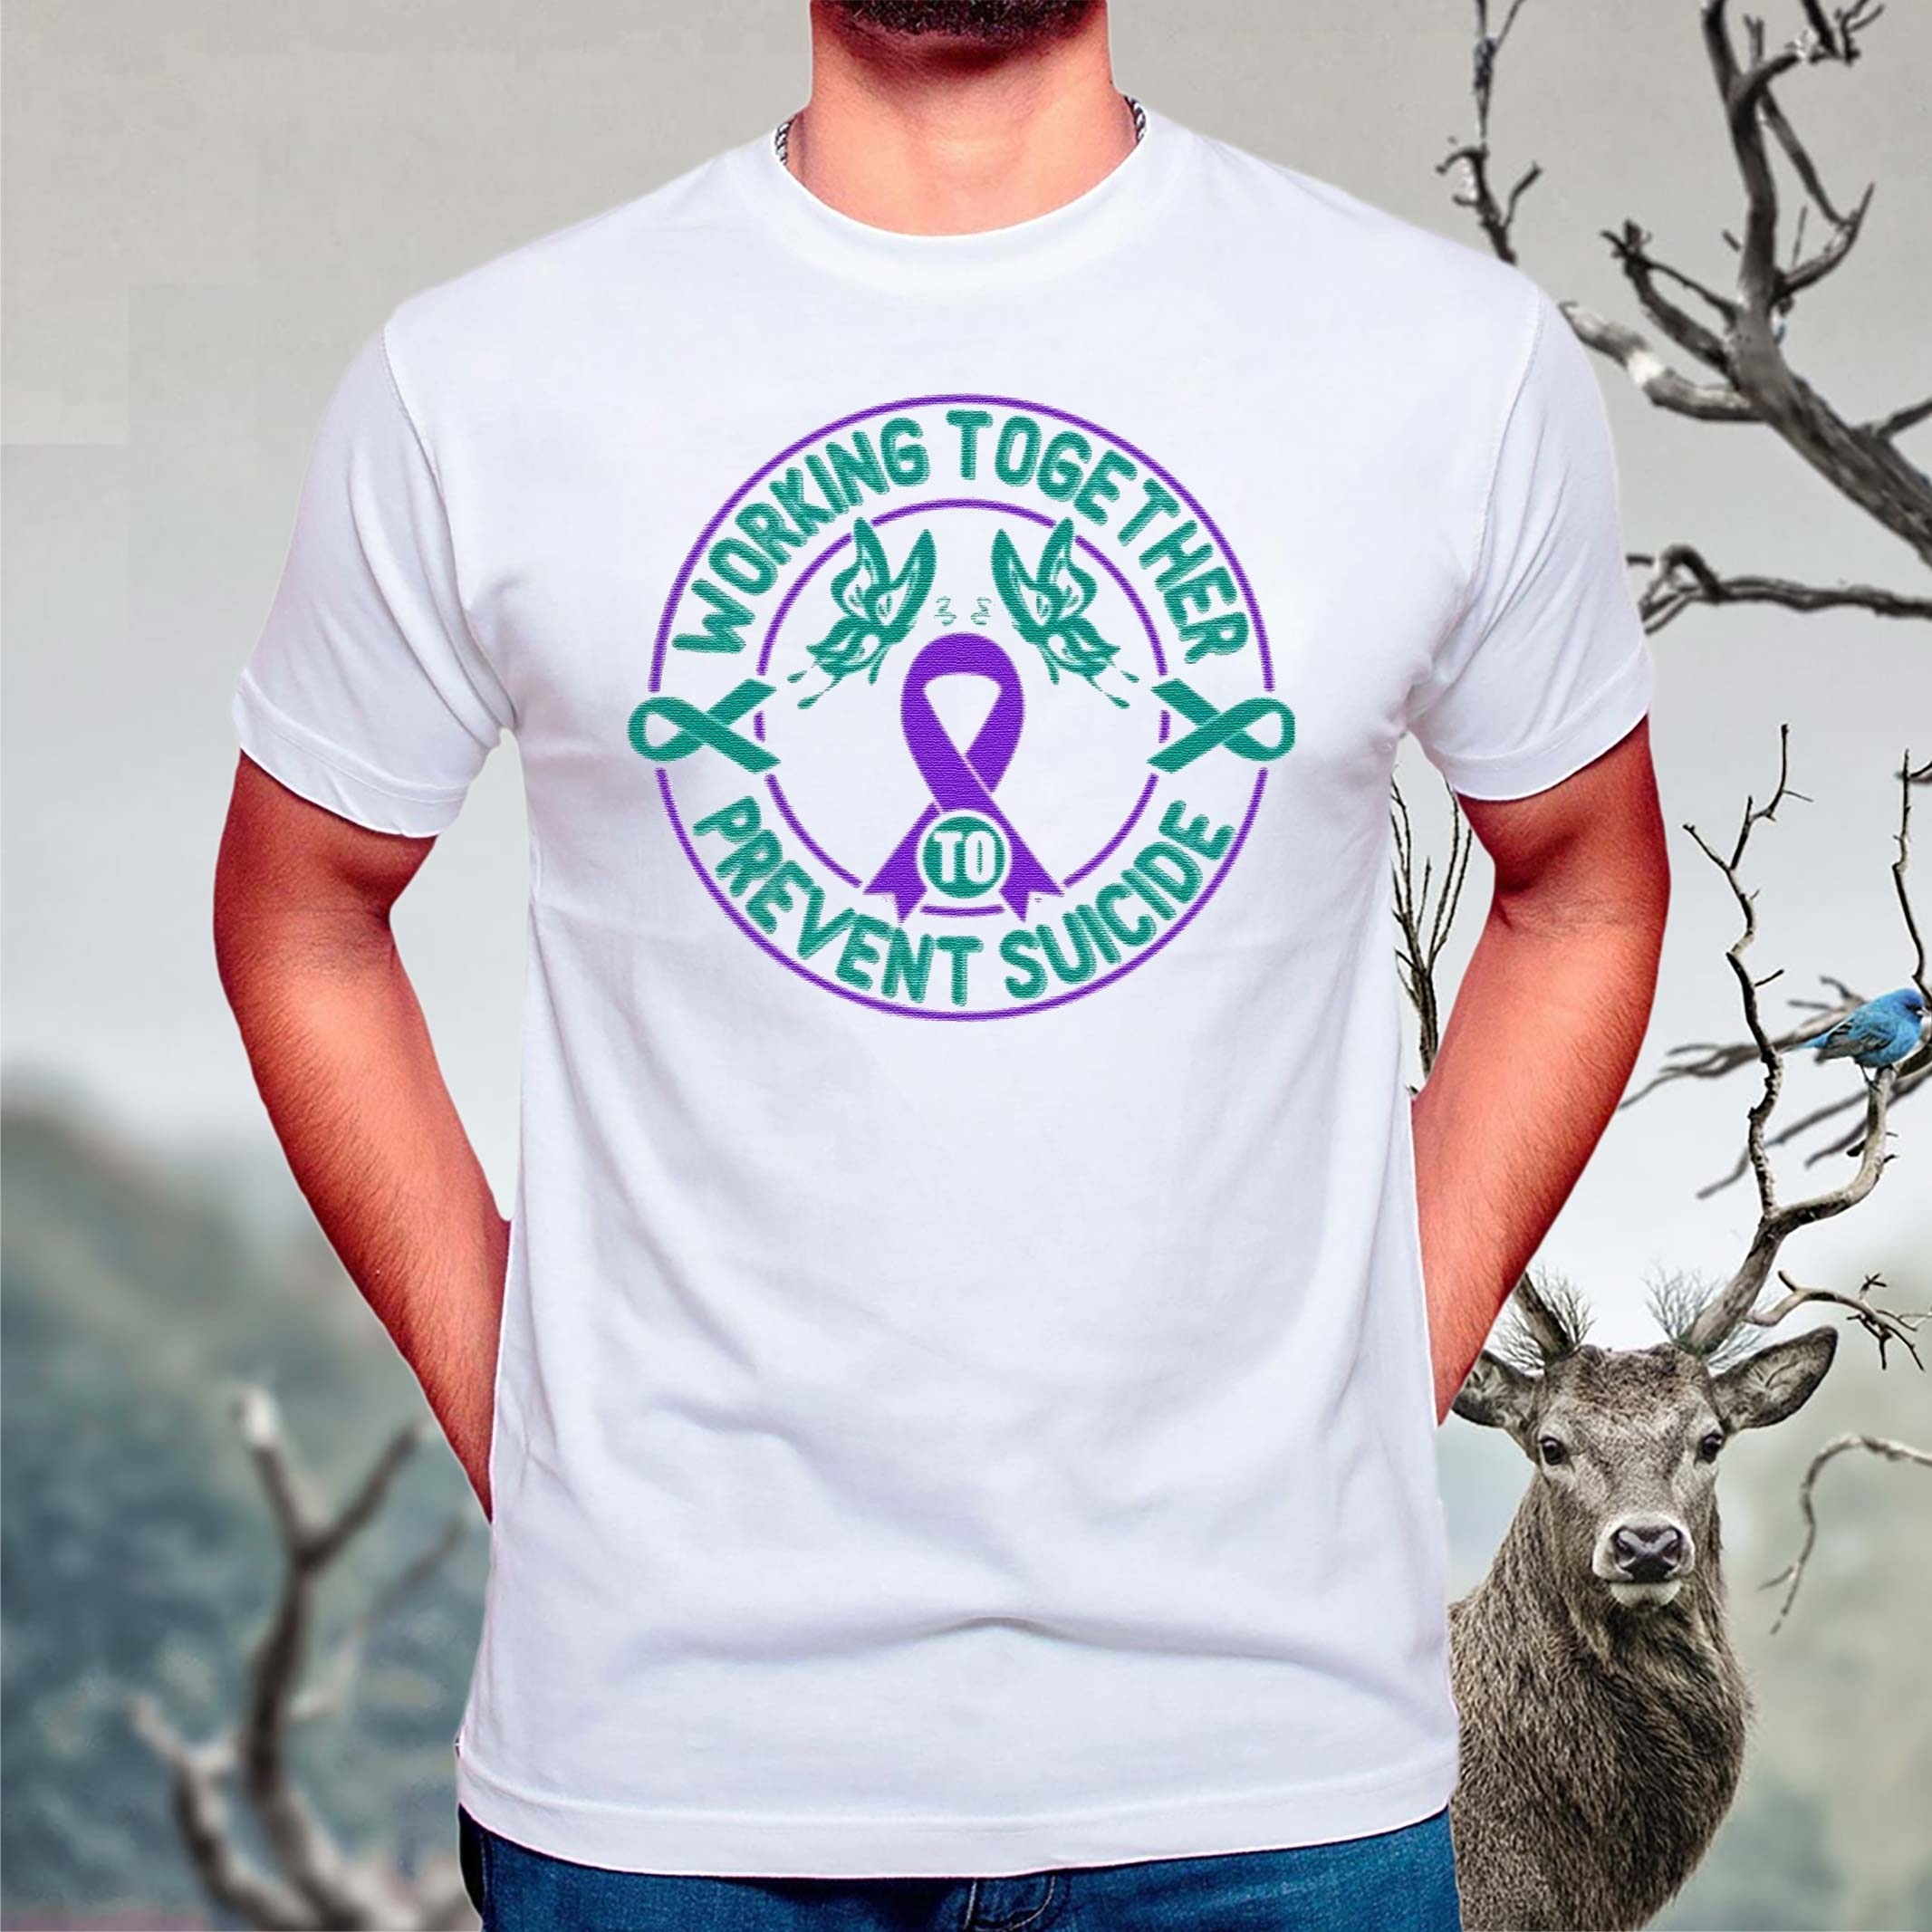 Suicide-Prevention-T-Shirts